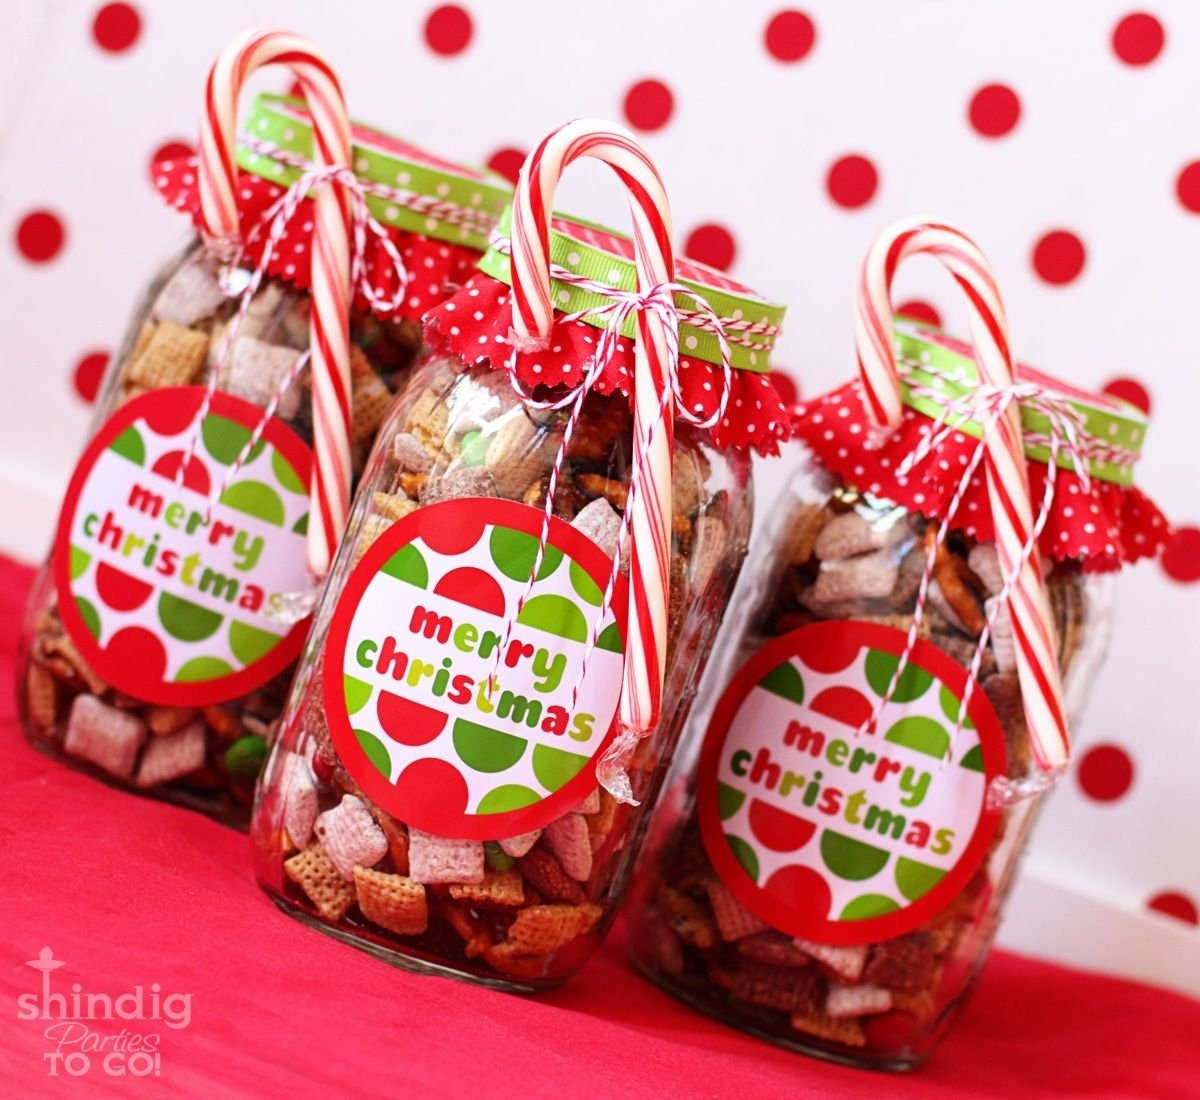 10 Great Great Homemade Christmas Gift Ideas amandas parties to go free merry christmas tags and gift idea 9 2020